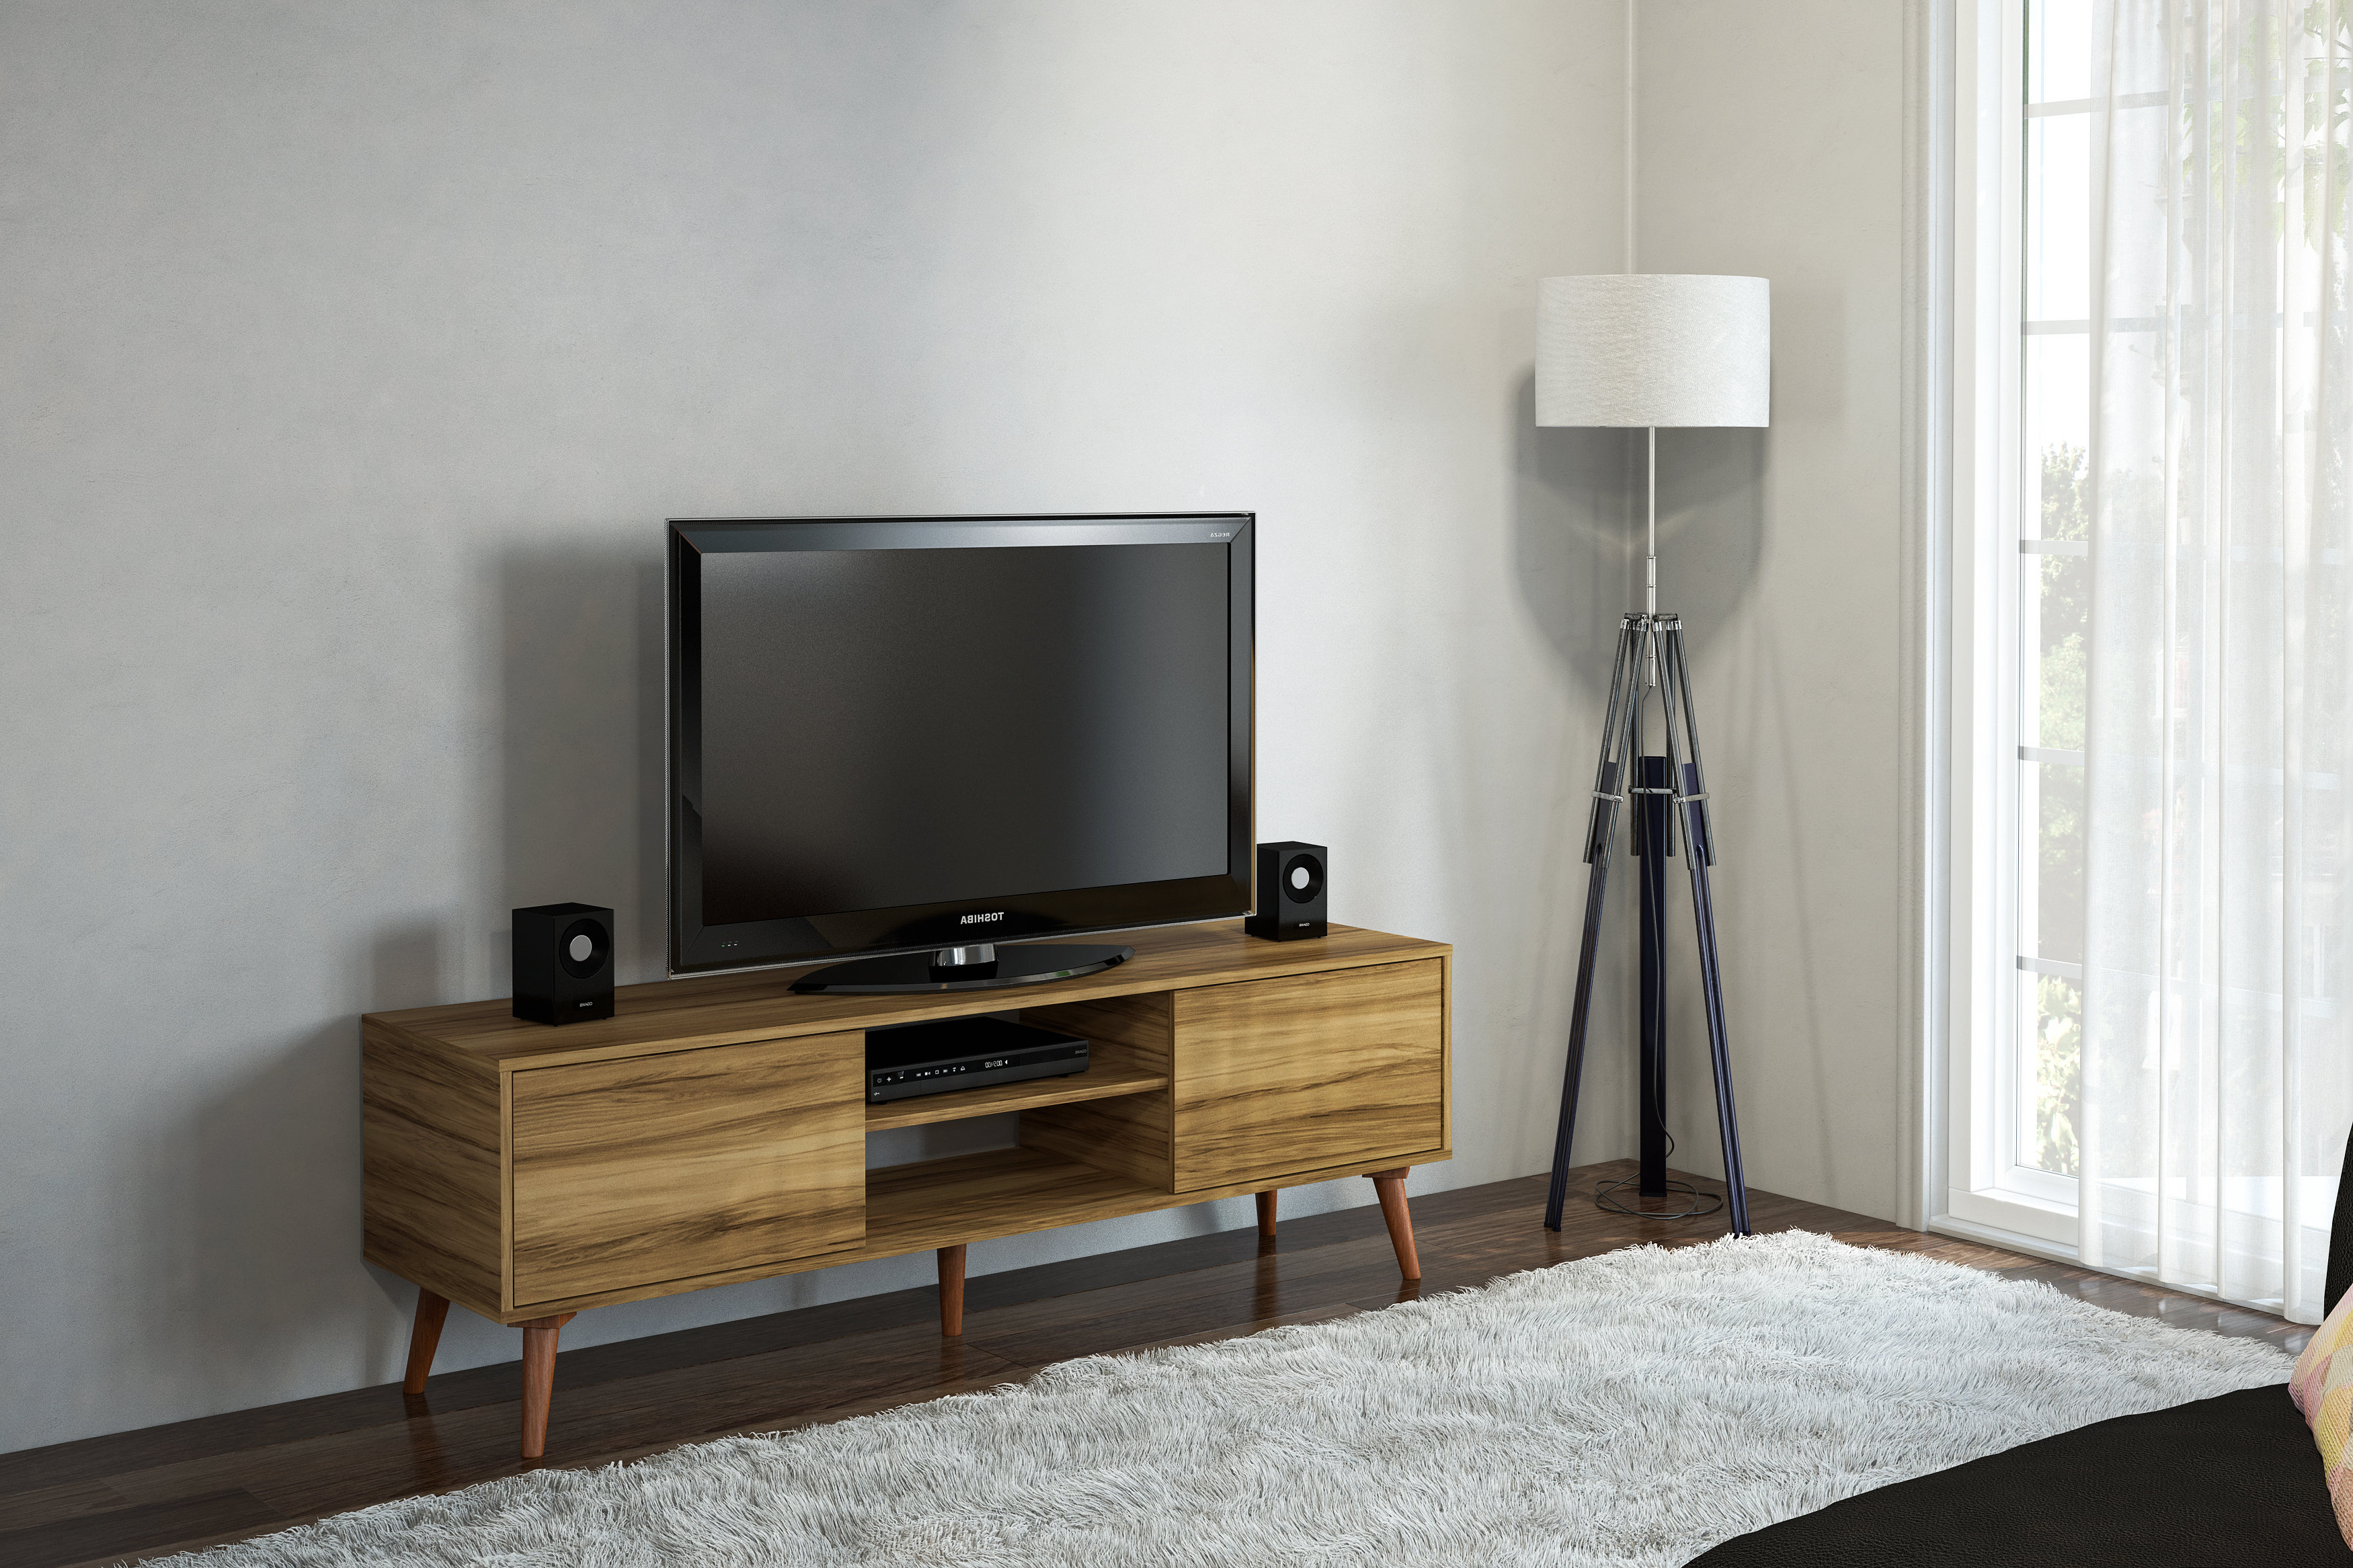 "Preferred Stylish Tv Stands Regarding Corrigan Studio Kenna Stylish Tv Stand For Tvs Up To 65"" & Reviews (View 9 of 20)"